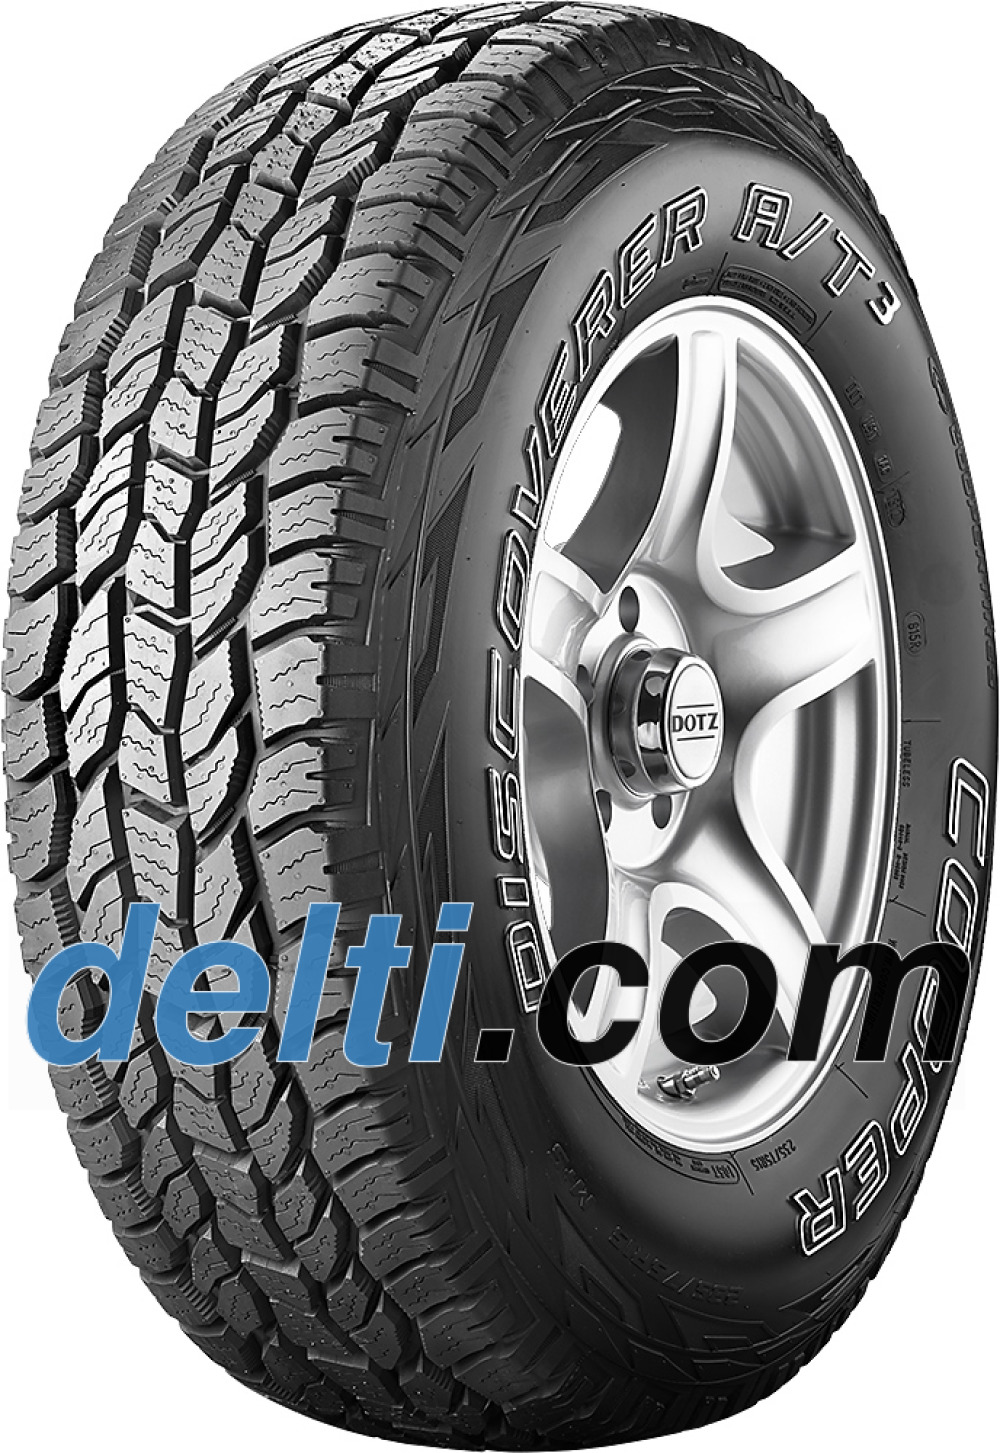 Cooper Discoverer AT3 ( LT215/85 R16 115/112R 10PR )